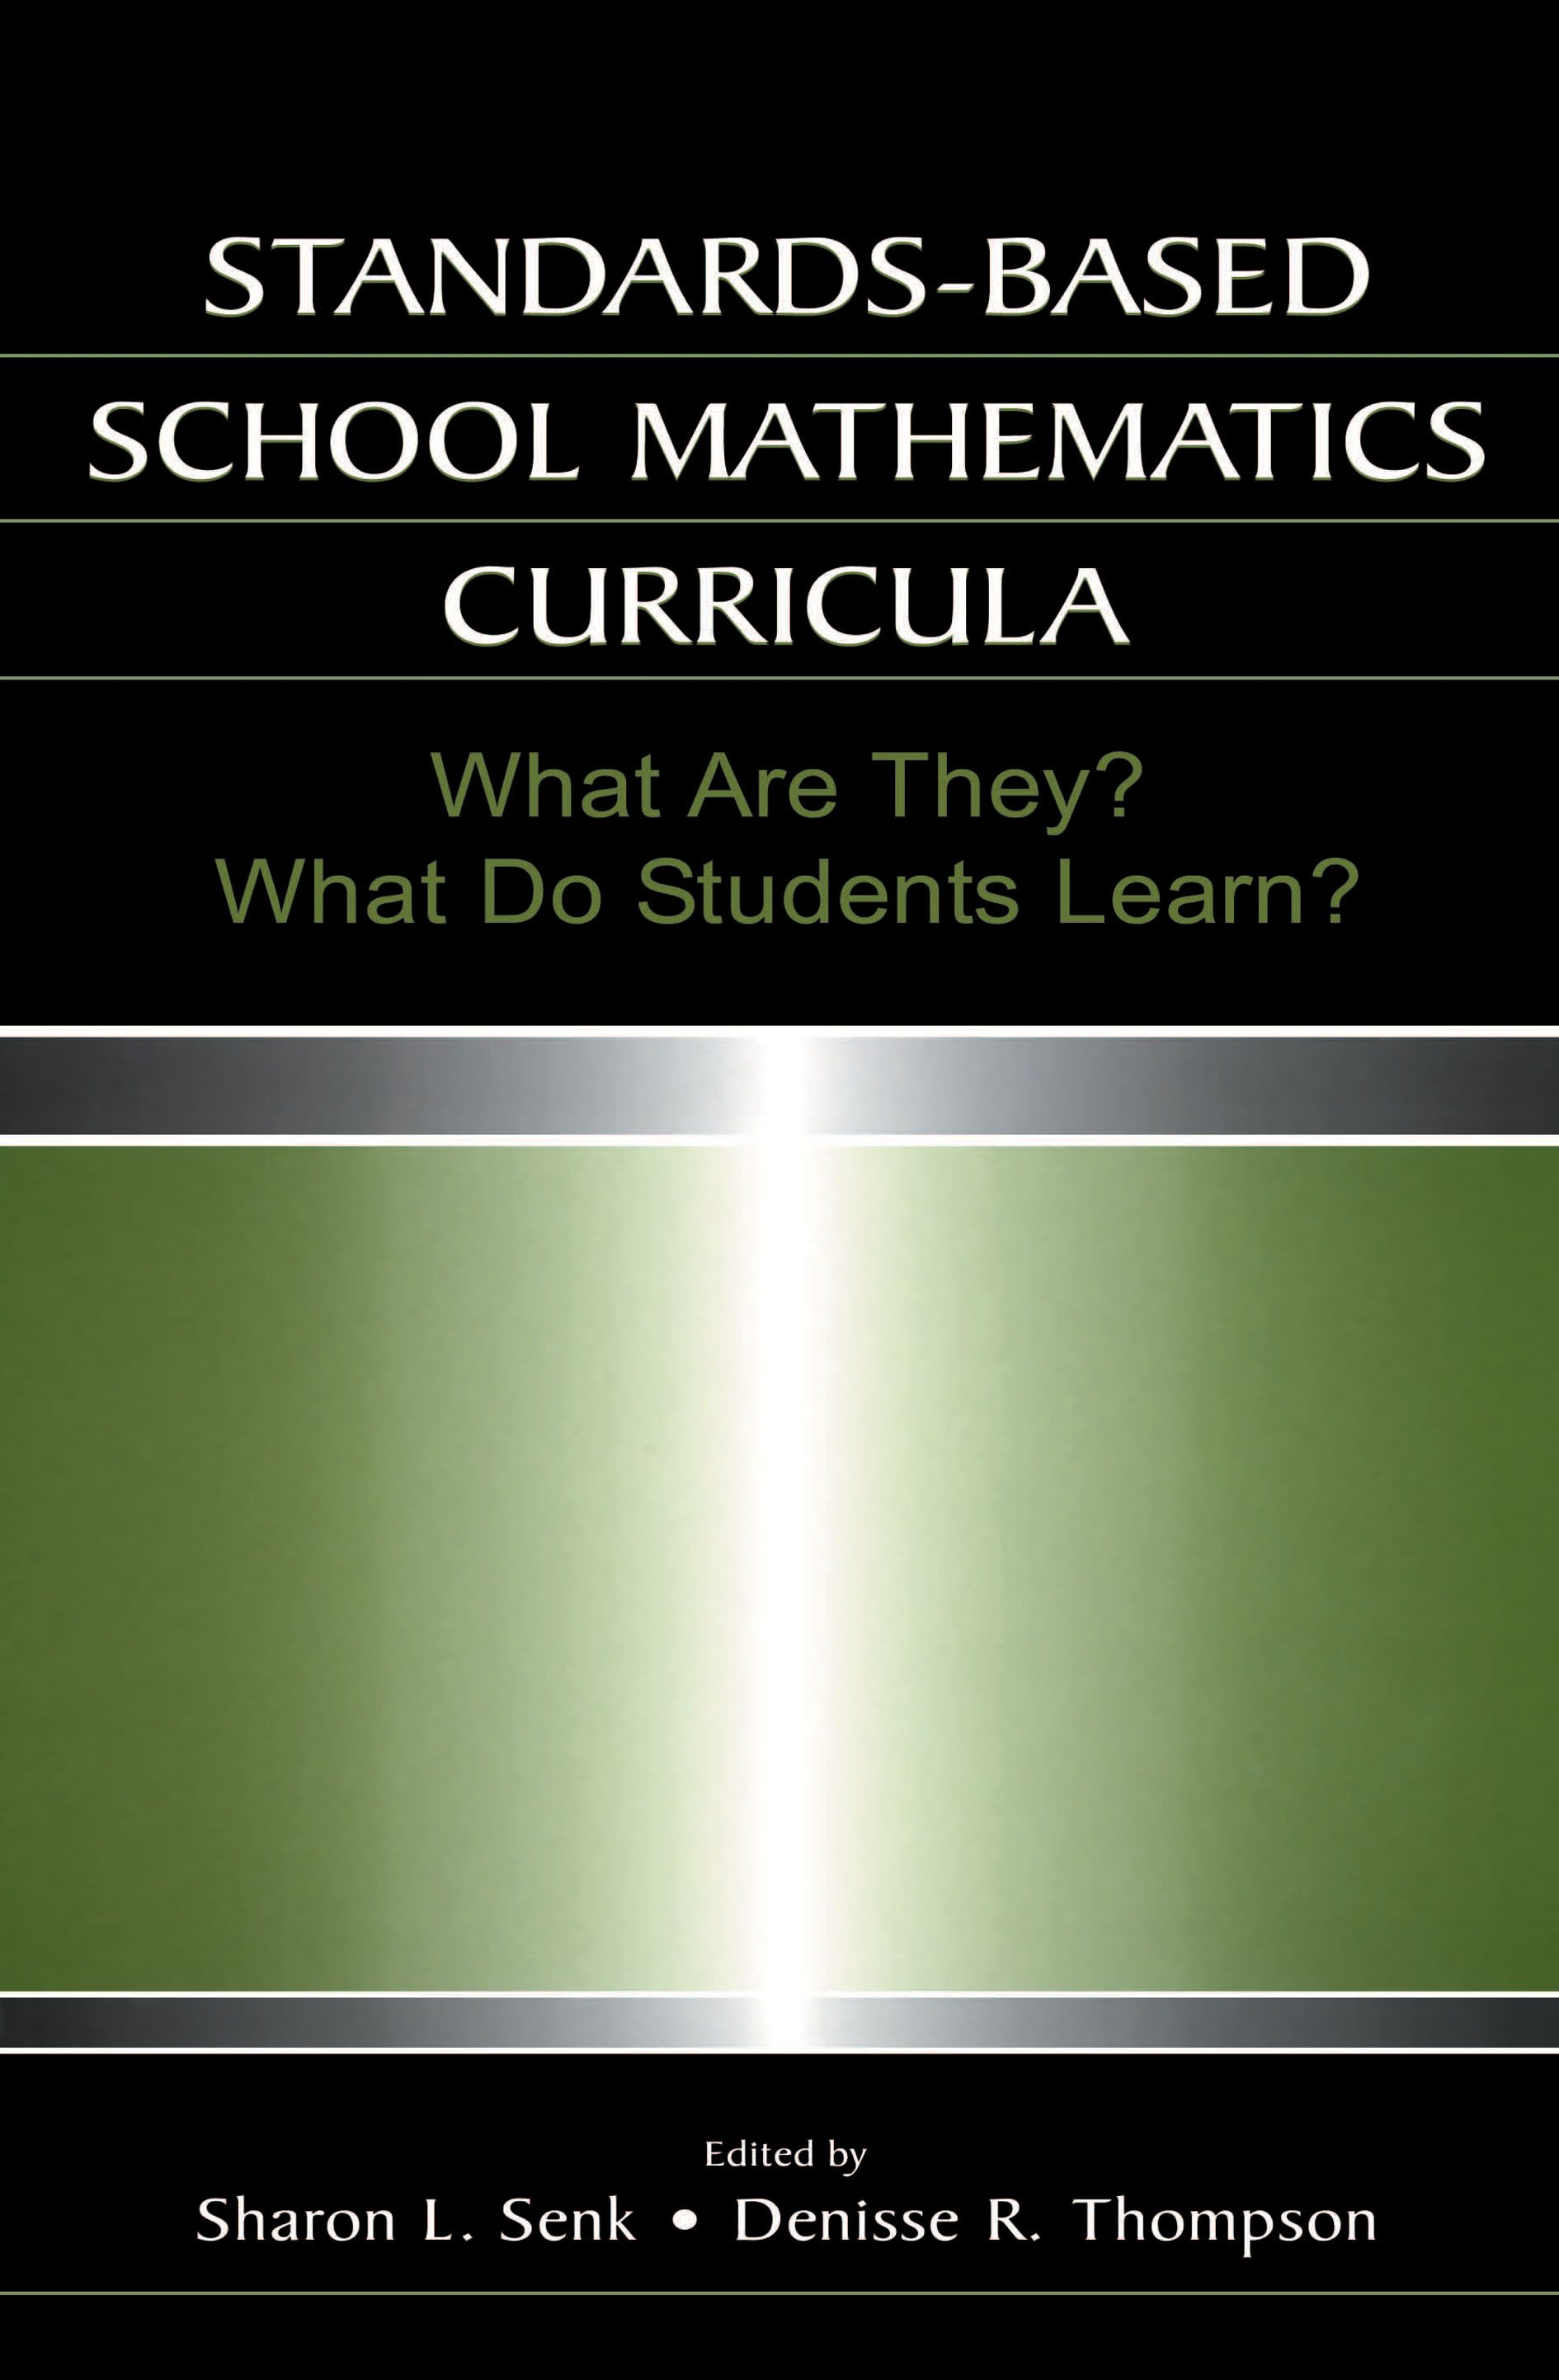 Student Attainment in the Connected Mathematics Curriculum